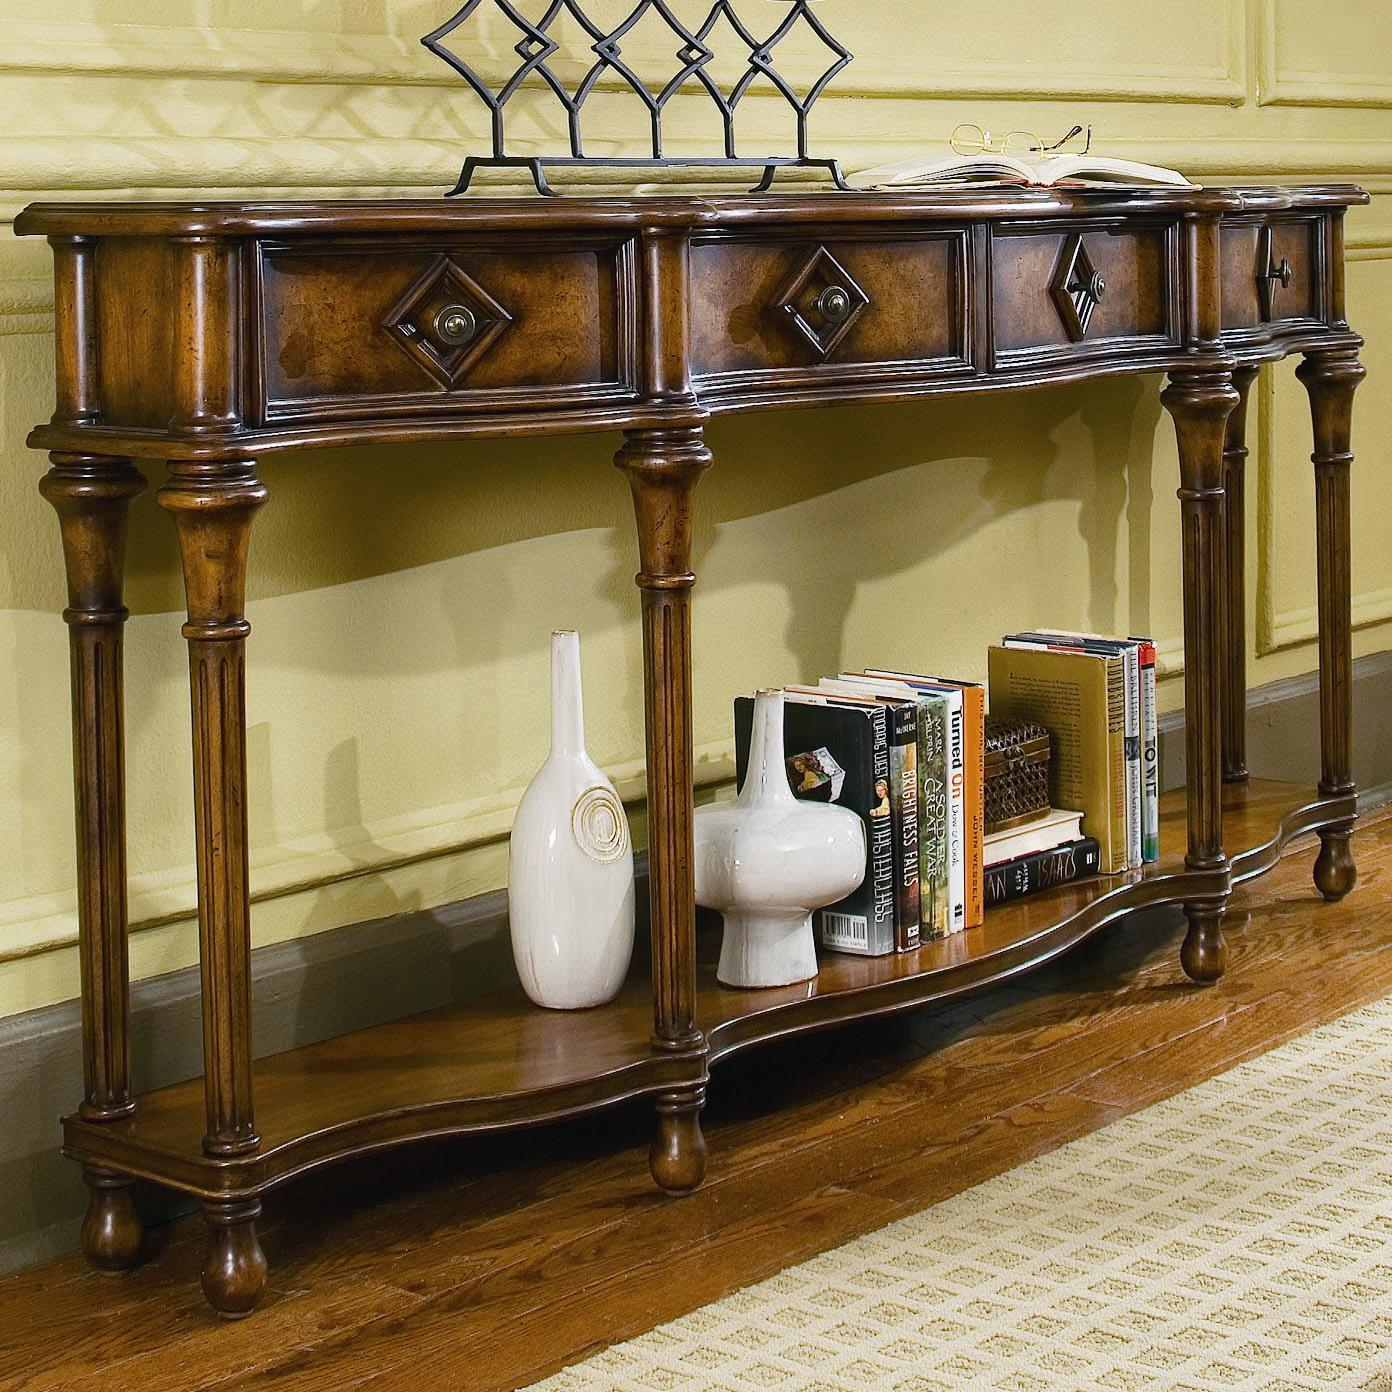 Hamilton Home Chests and Consoles 72-Inch Hall Console - Item Number: 963-85-122